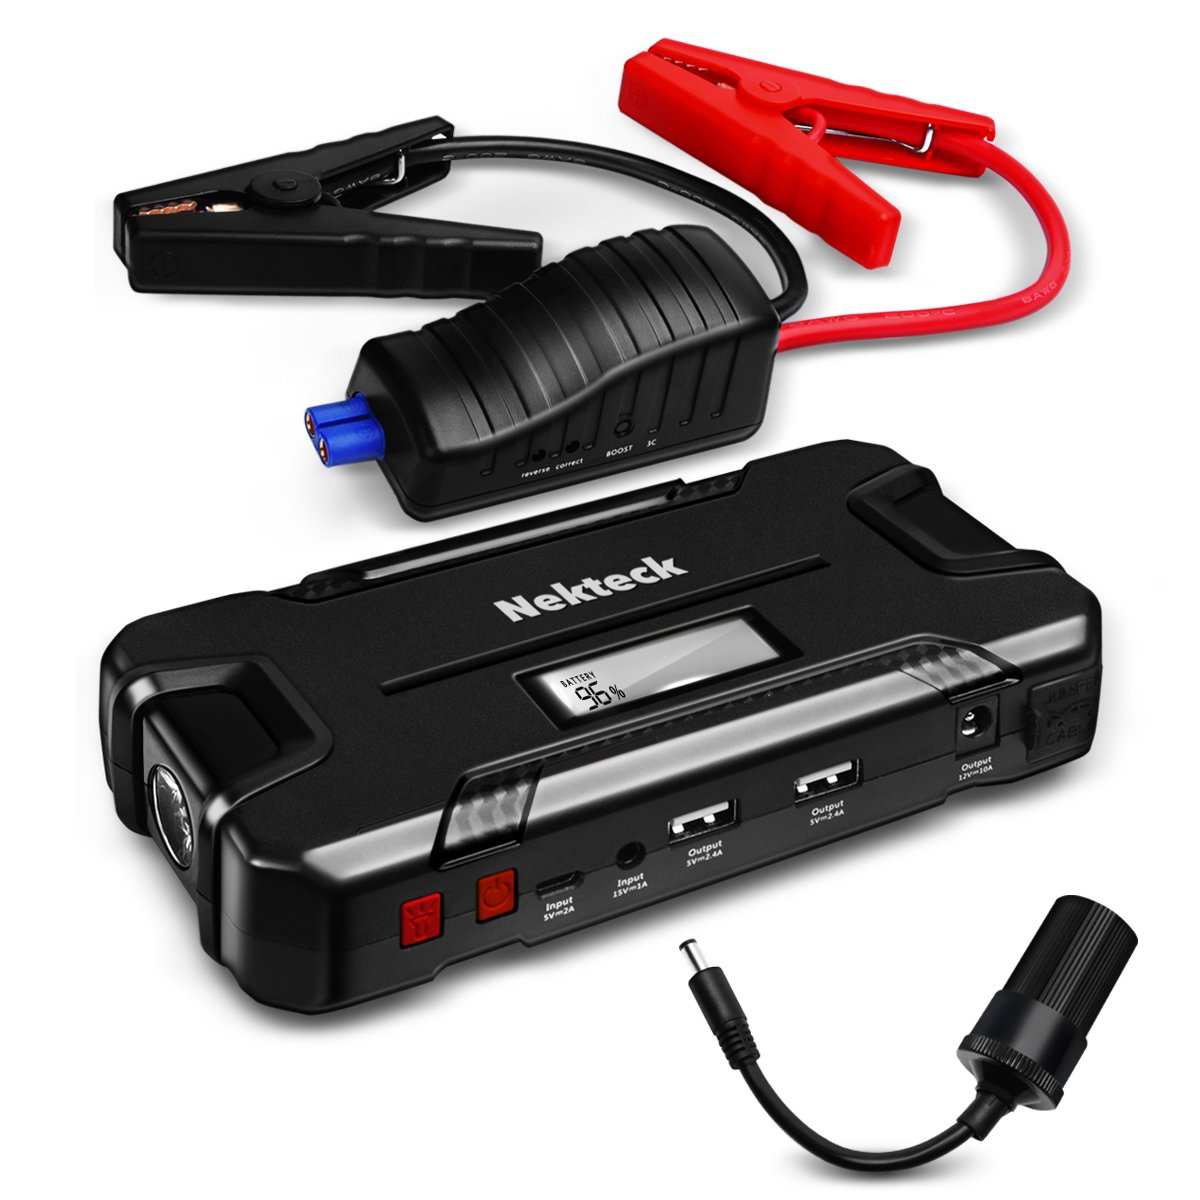 Nekteck Car Jump Starter Portable Power Bank External Battery Charger 500A Peak With 12000mAh –